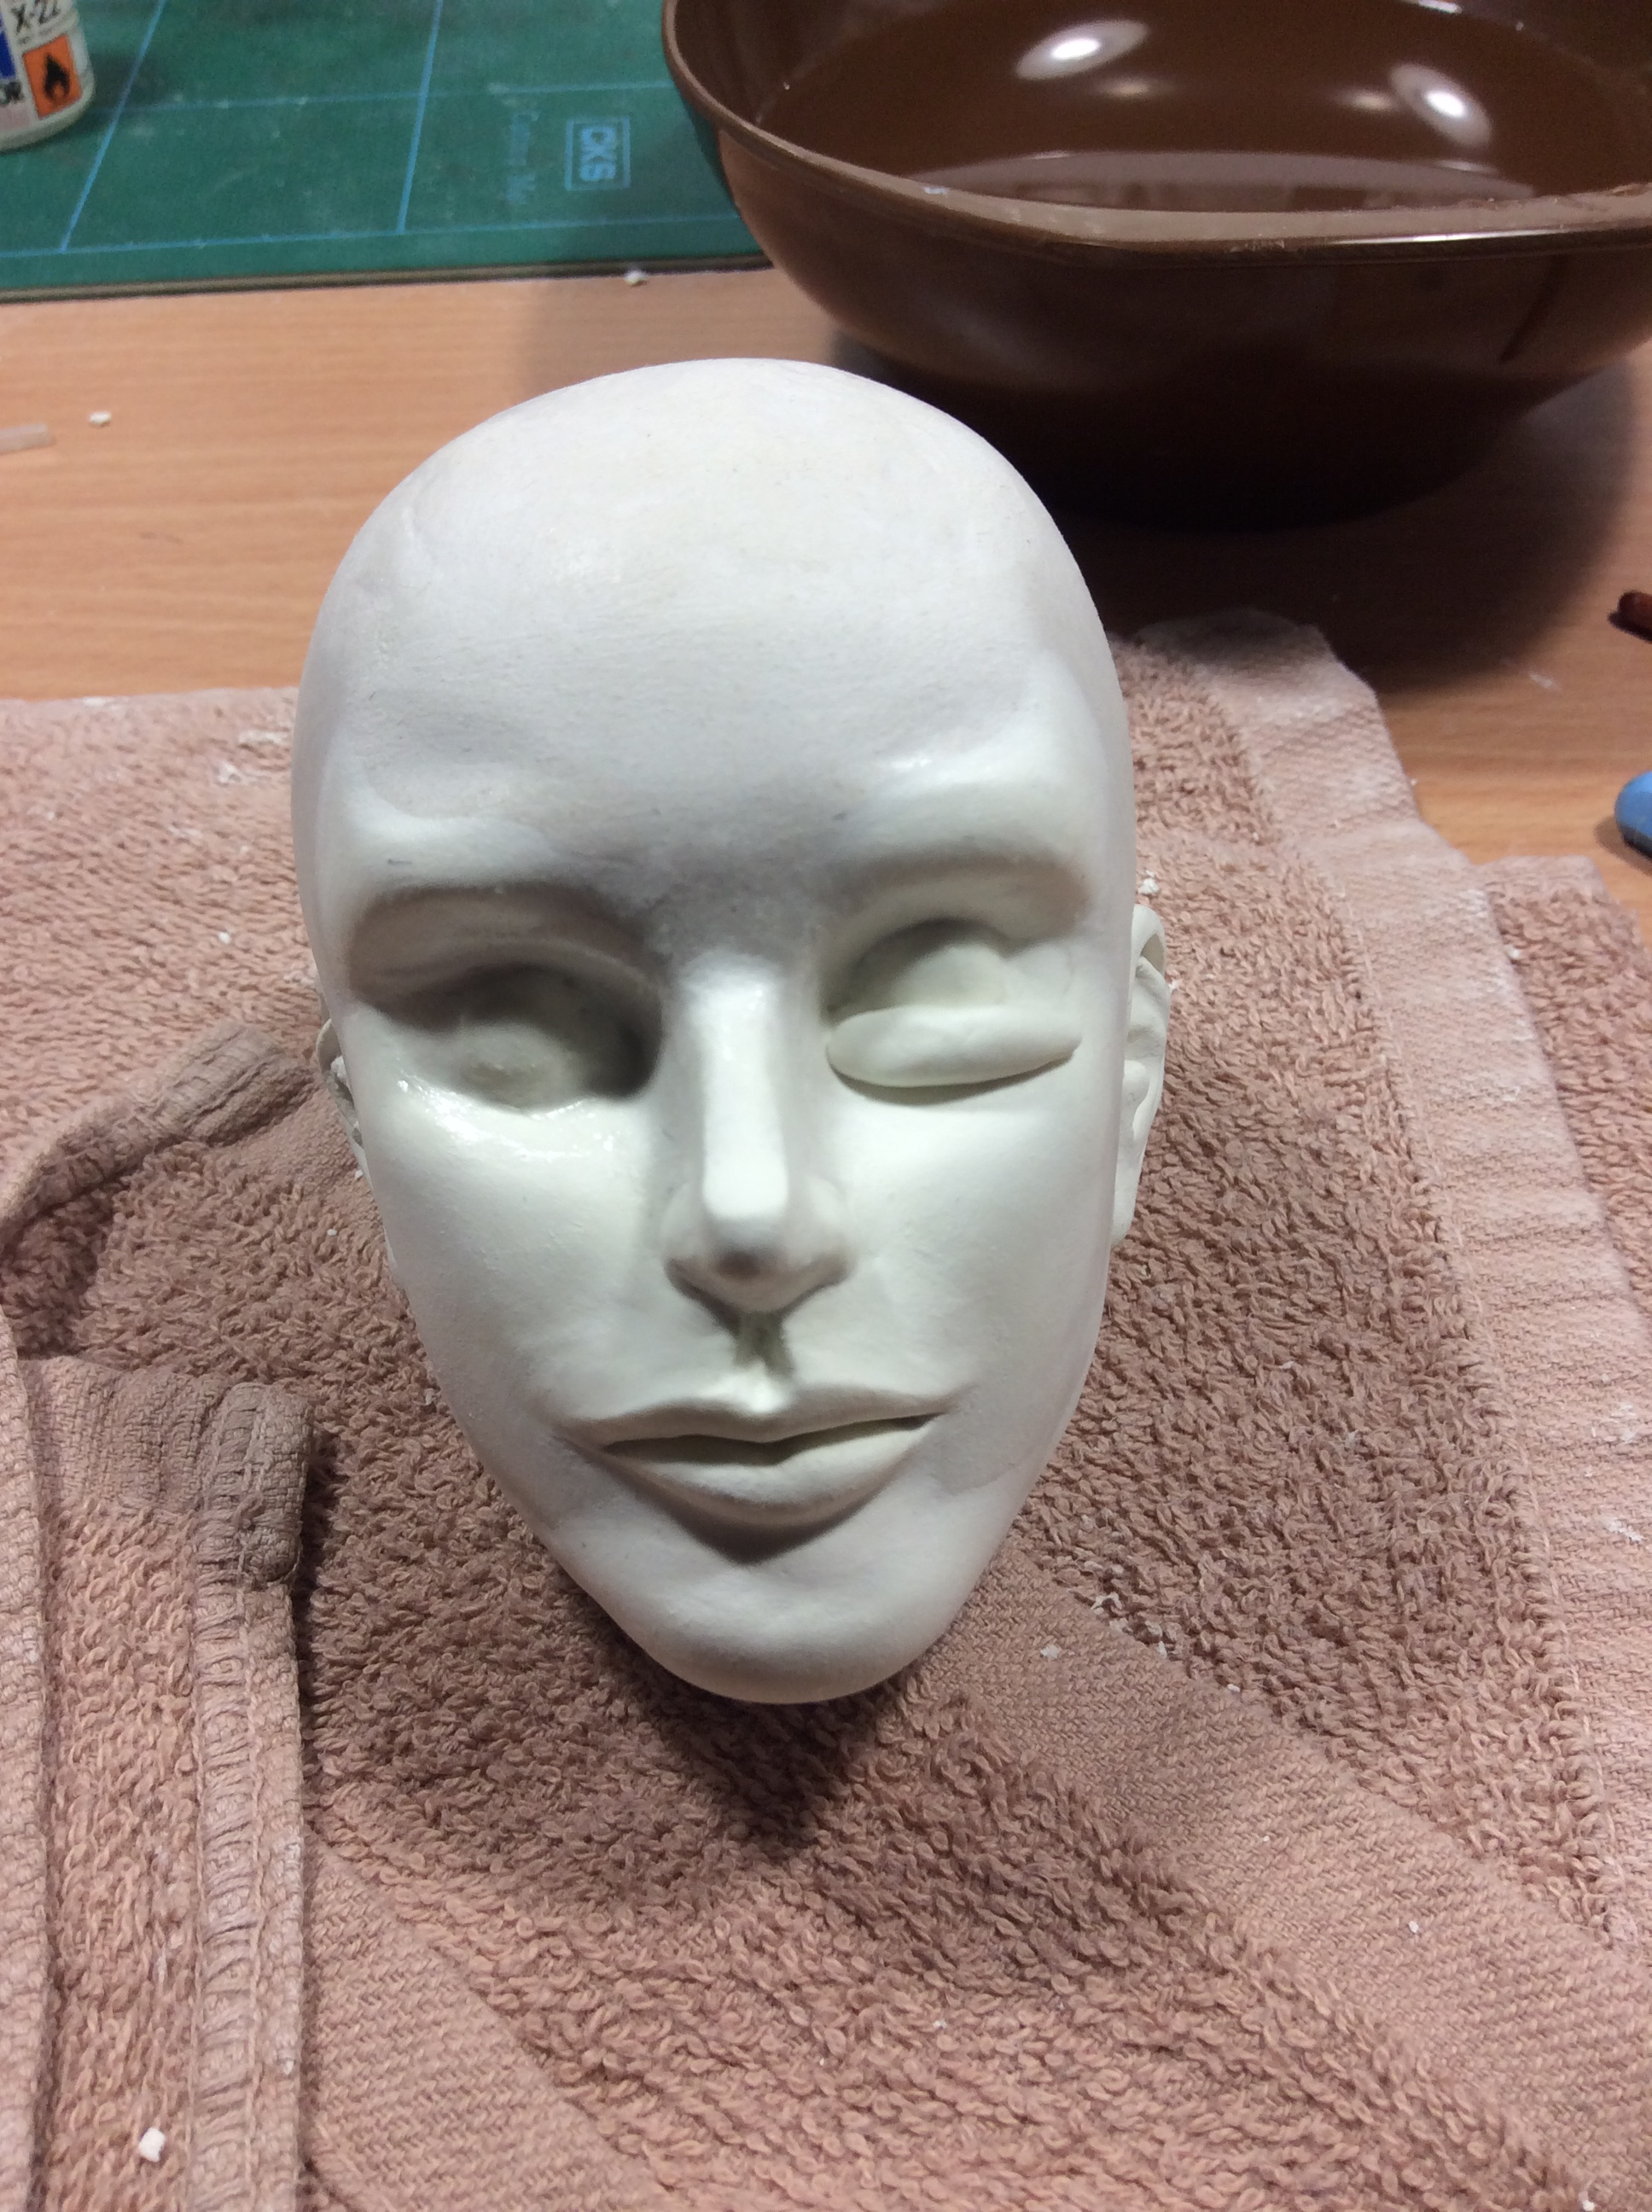 jemse---my-first-doll-head-making-progress-diary-part-3_31571086014_o